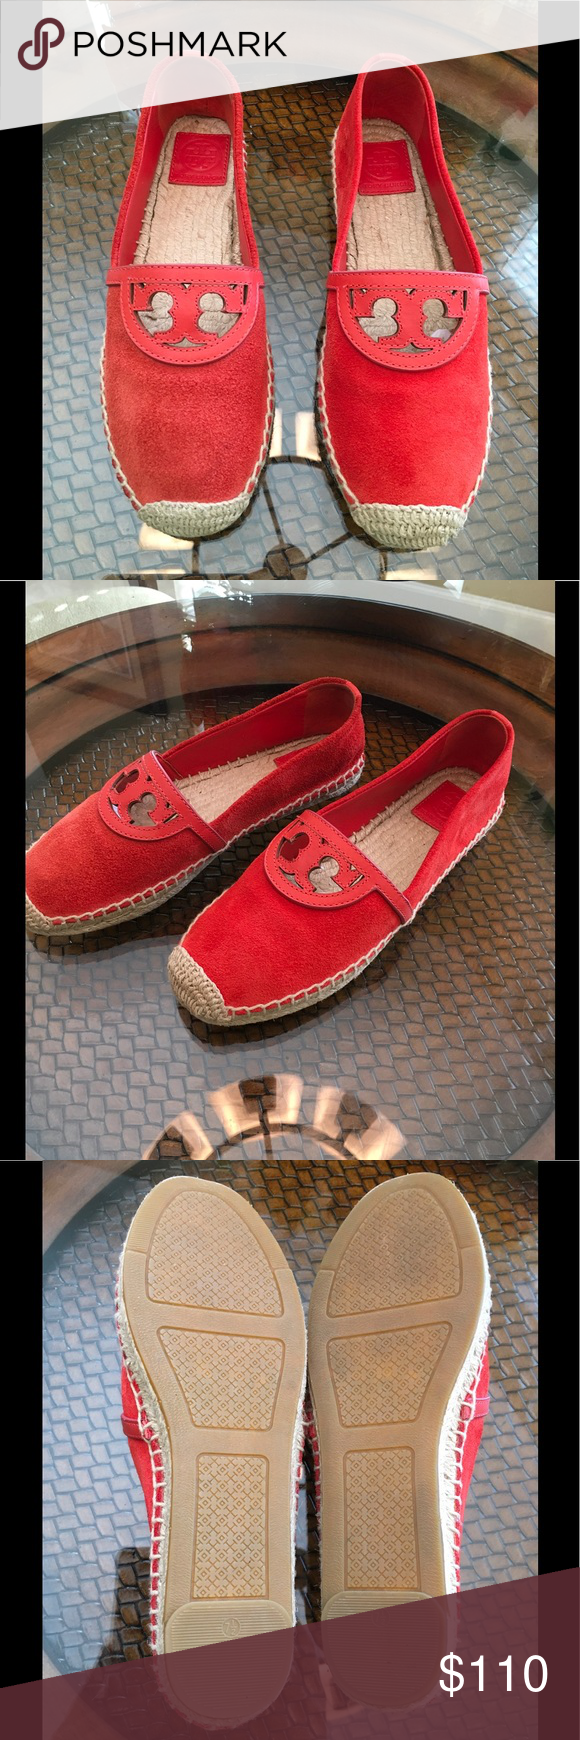 3398bd9f641e 💥Tory Burch Sidney Espadrilles 💥 Tory Burch suede and leather espadrilles  Slip on design Suede upper with cut-out leather design Jute footbed with  full ...